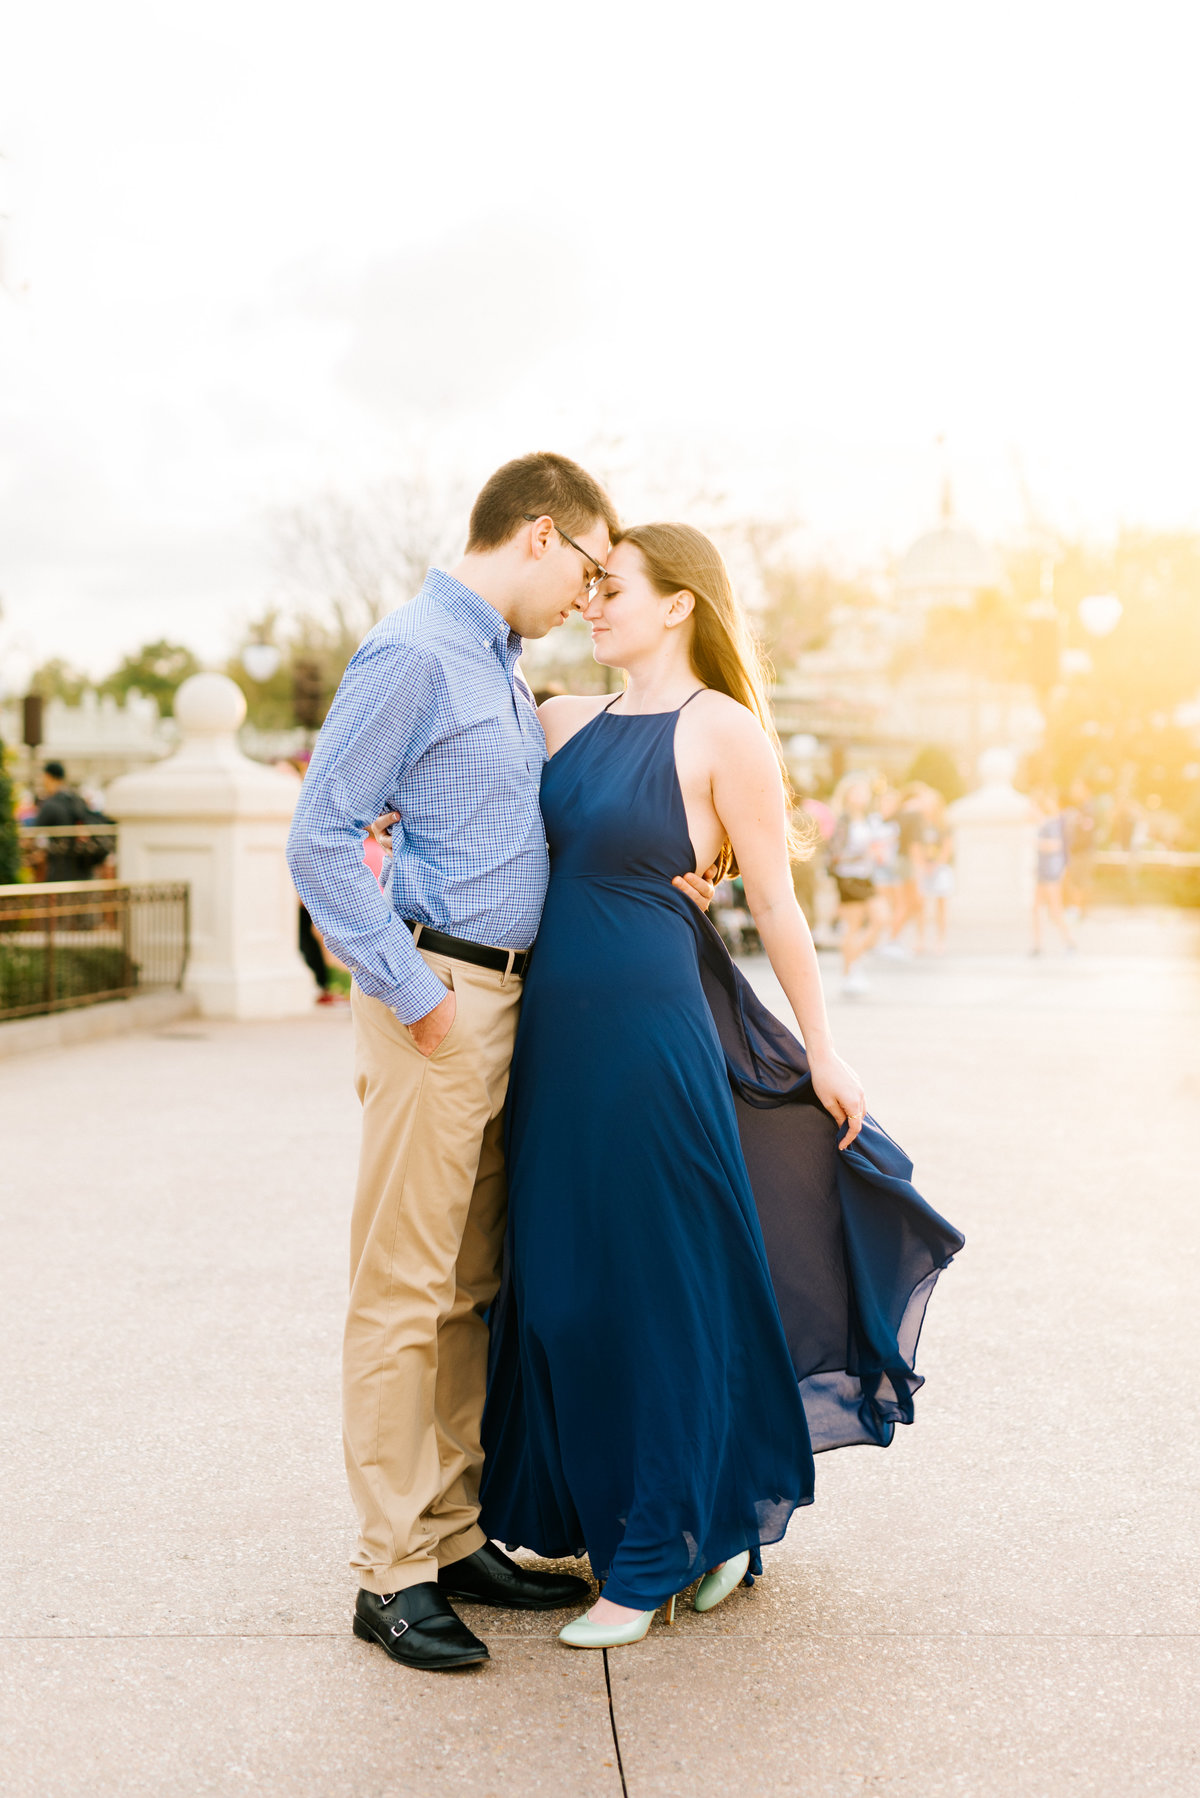 sierra and matt walt disney world wedding 2018-16